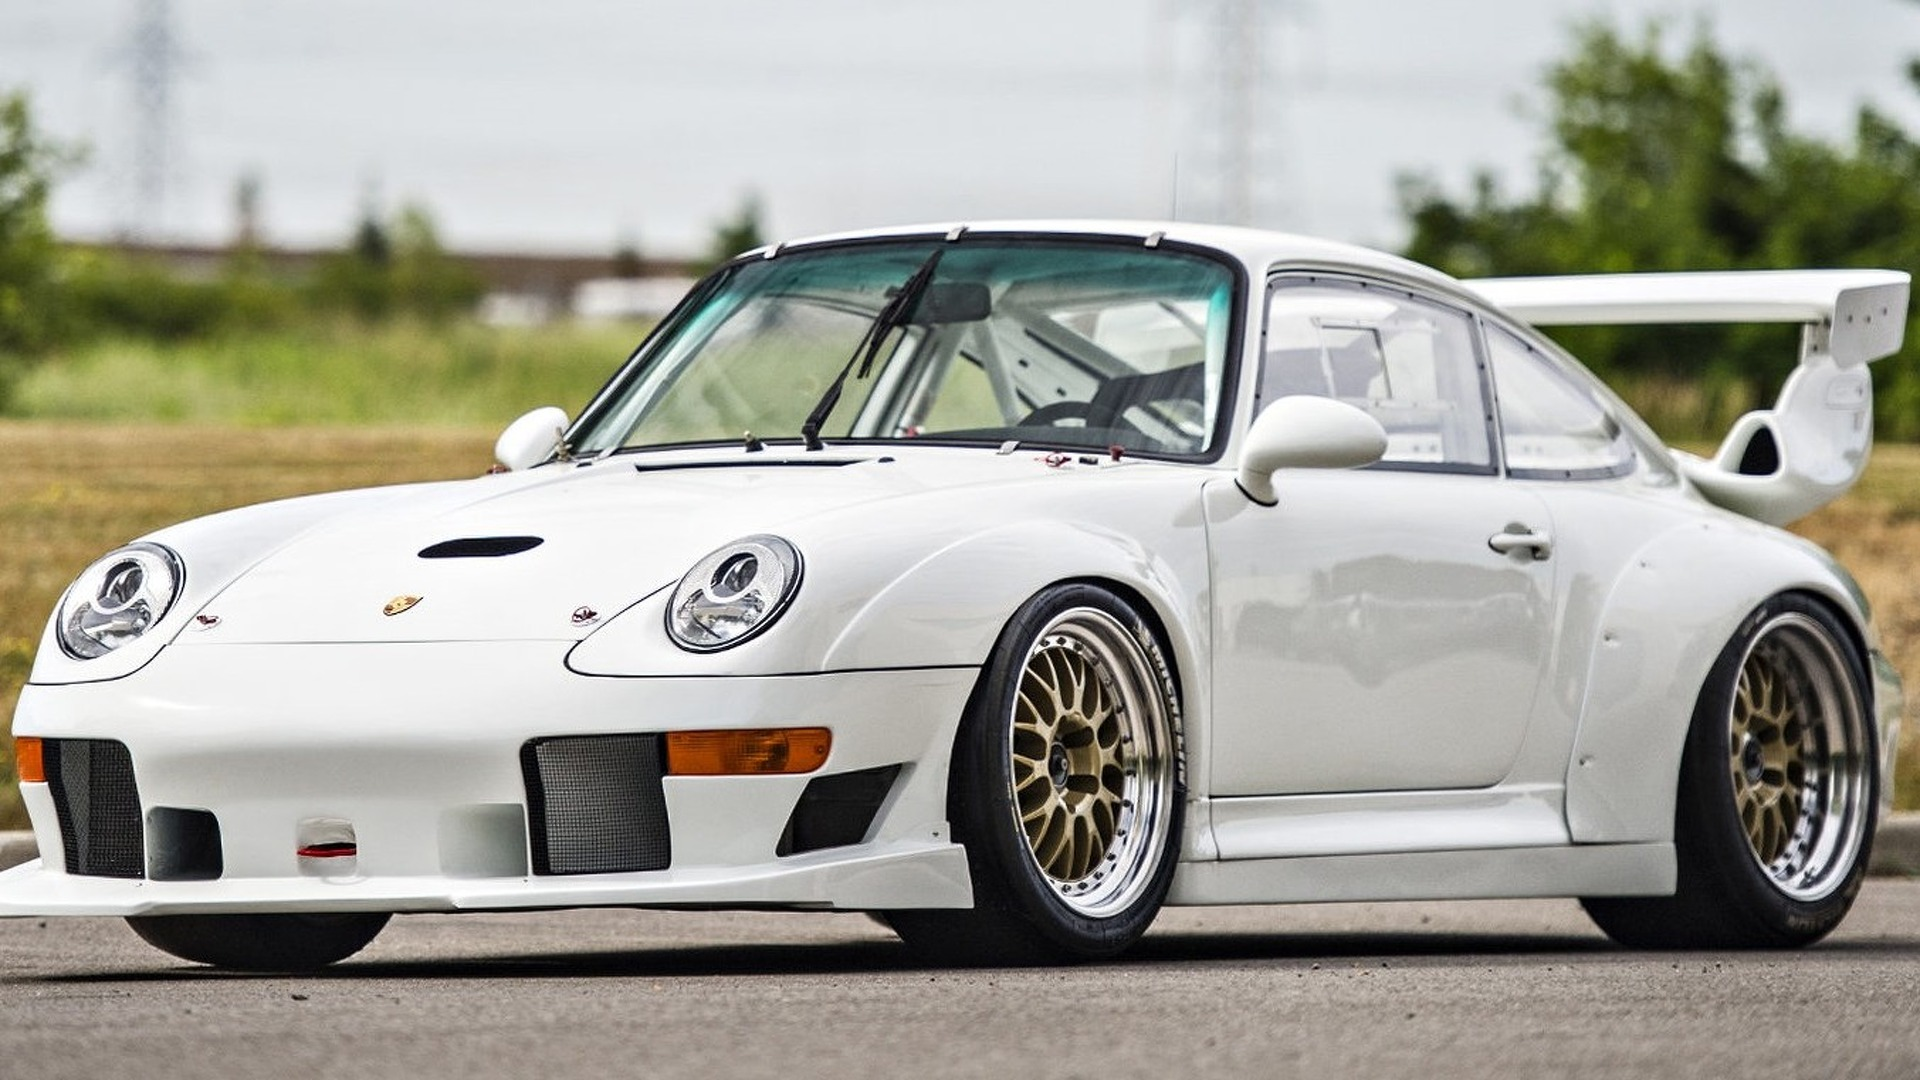 Porsche 911 GT2 Evo 1996 in auction (1)